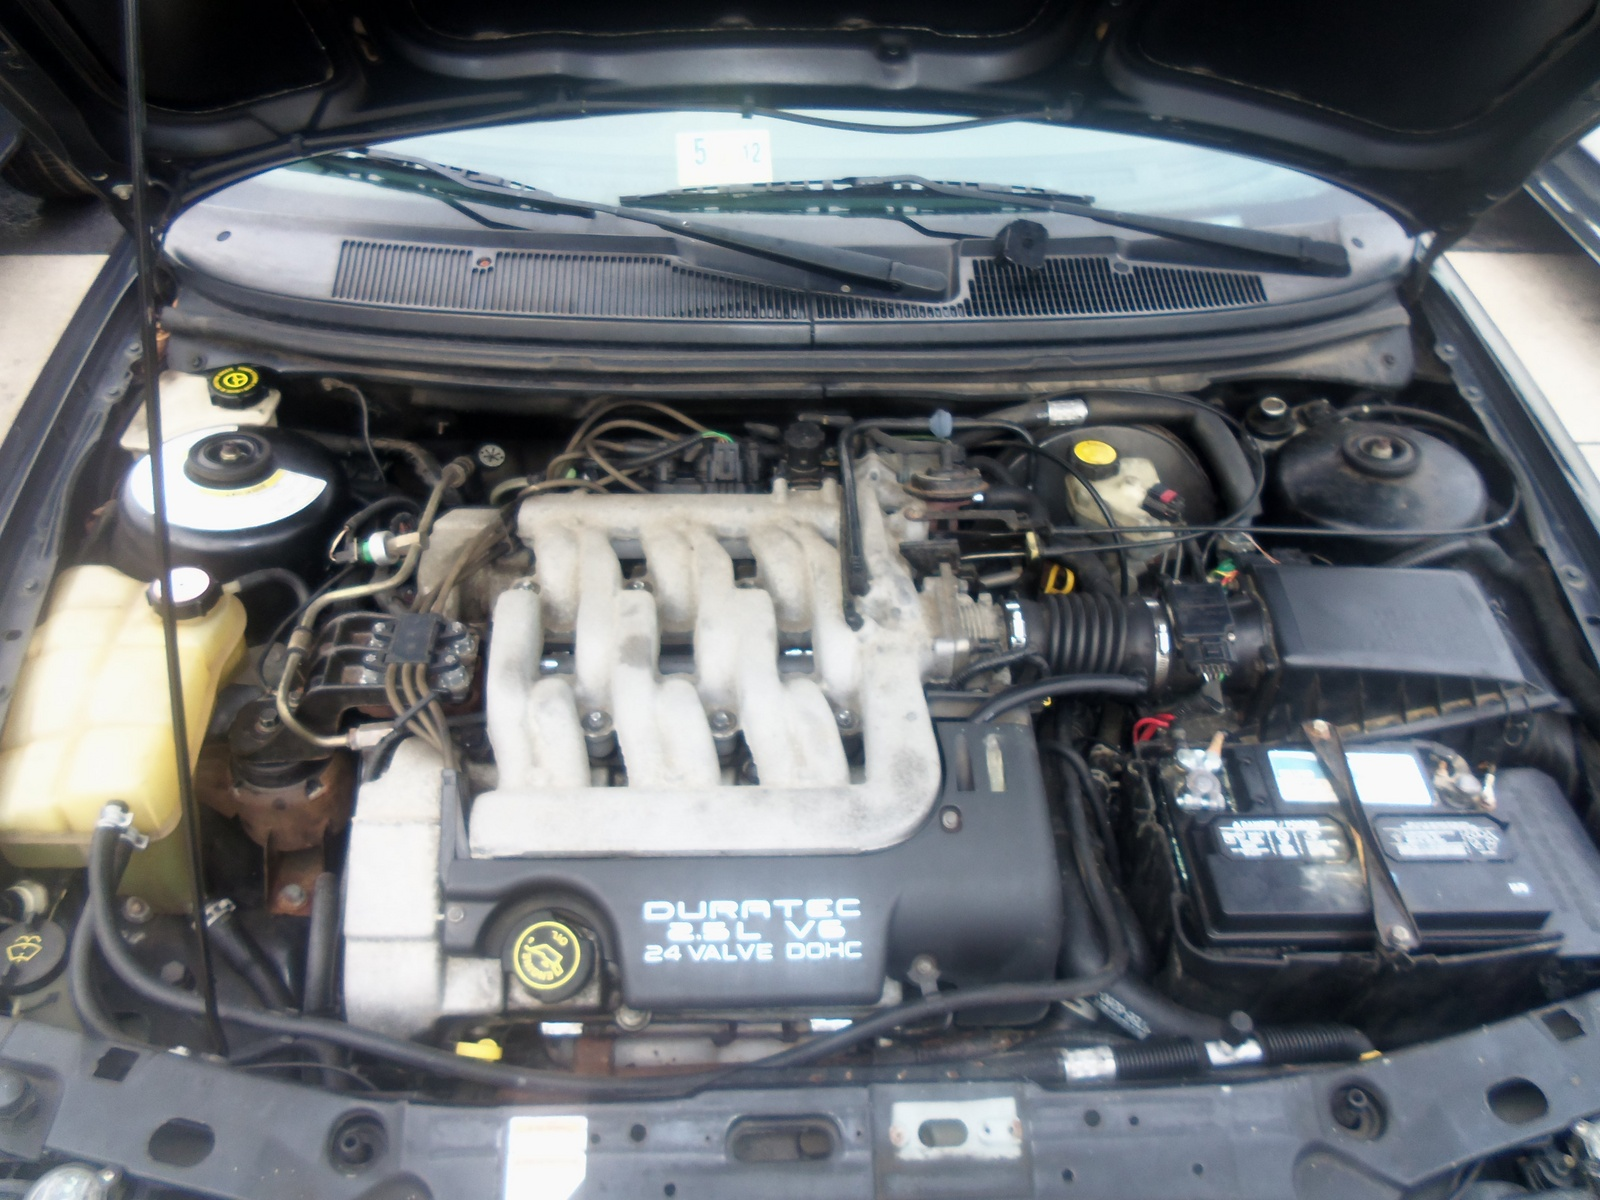 Ford Contour Svt Engine Pictures to Pin on Pinterest - PinsDaddy